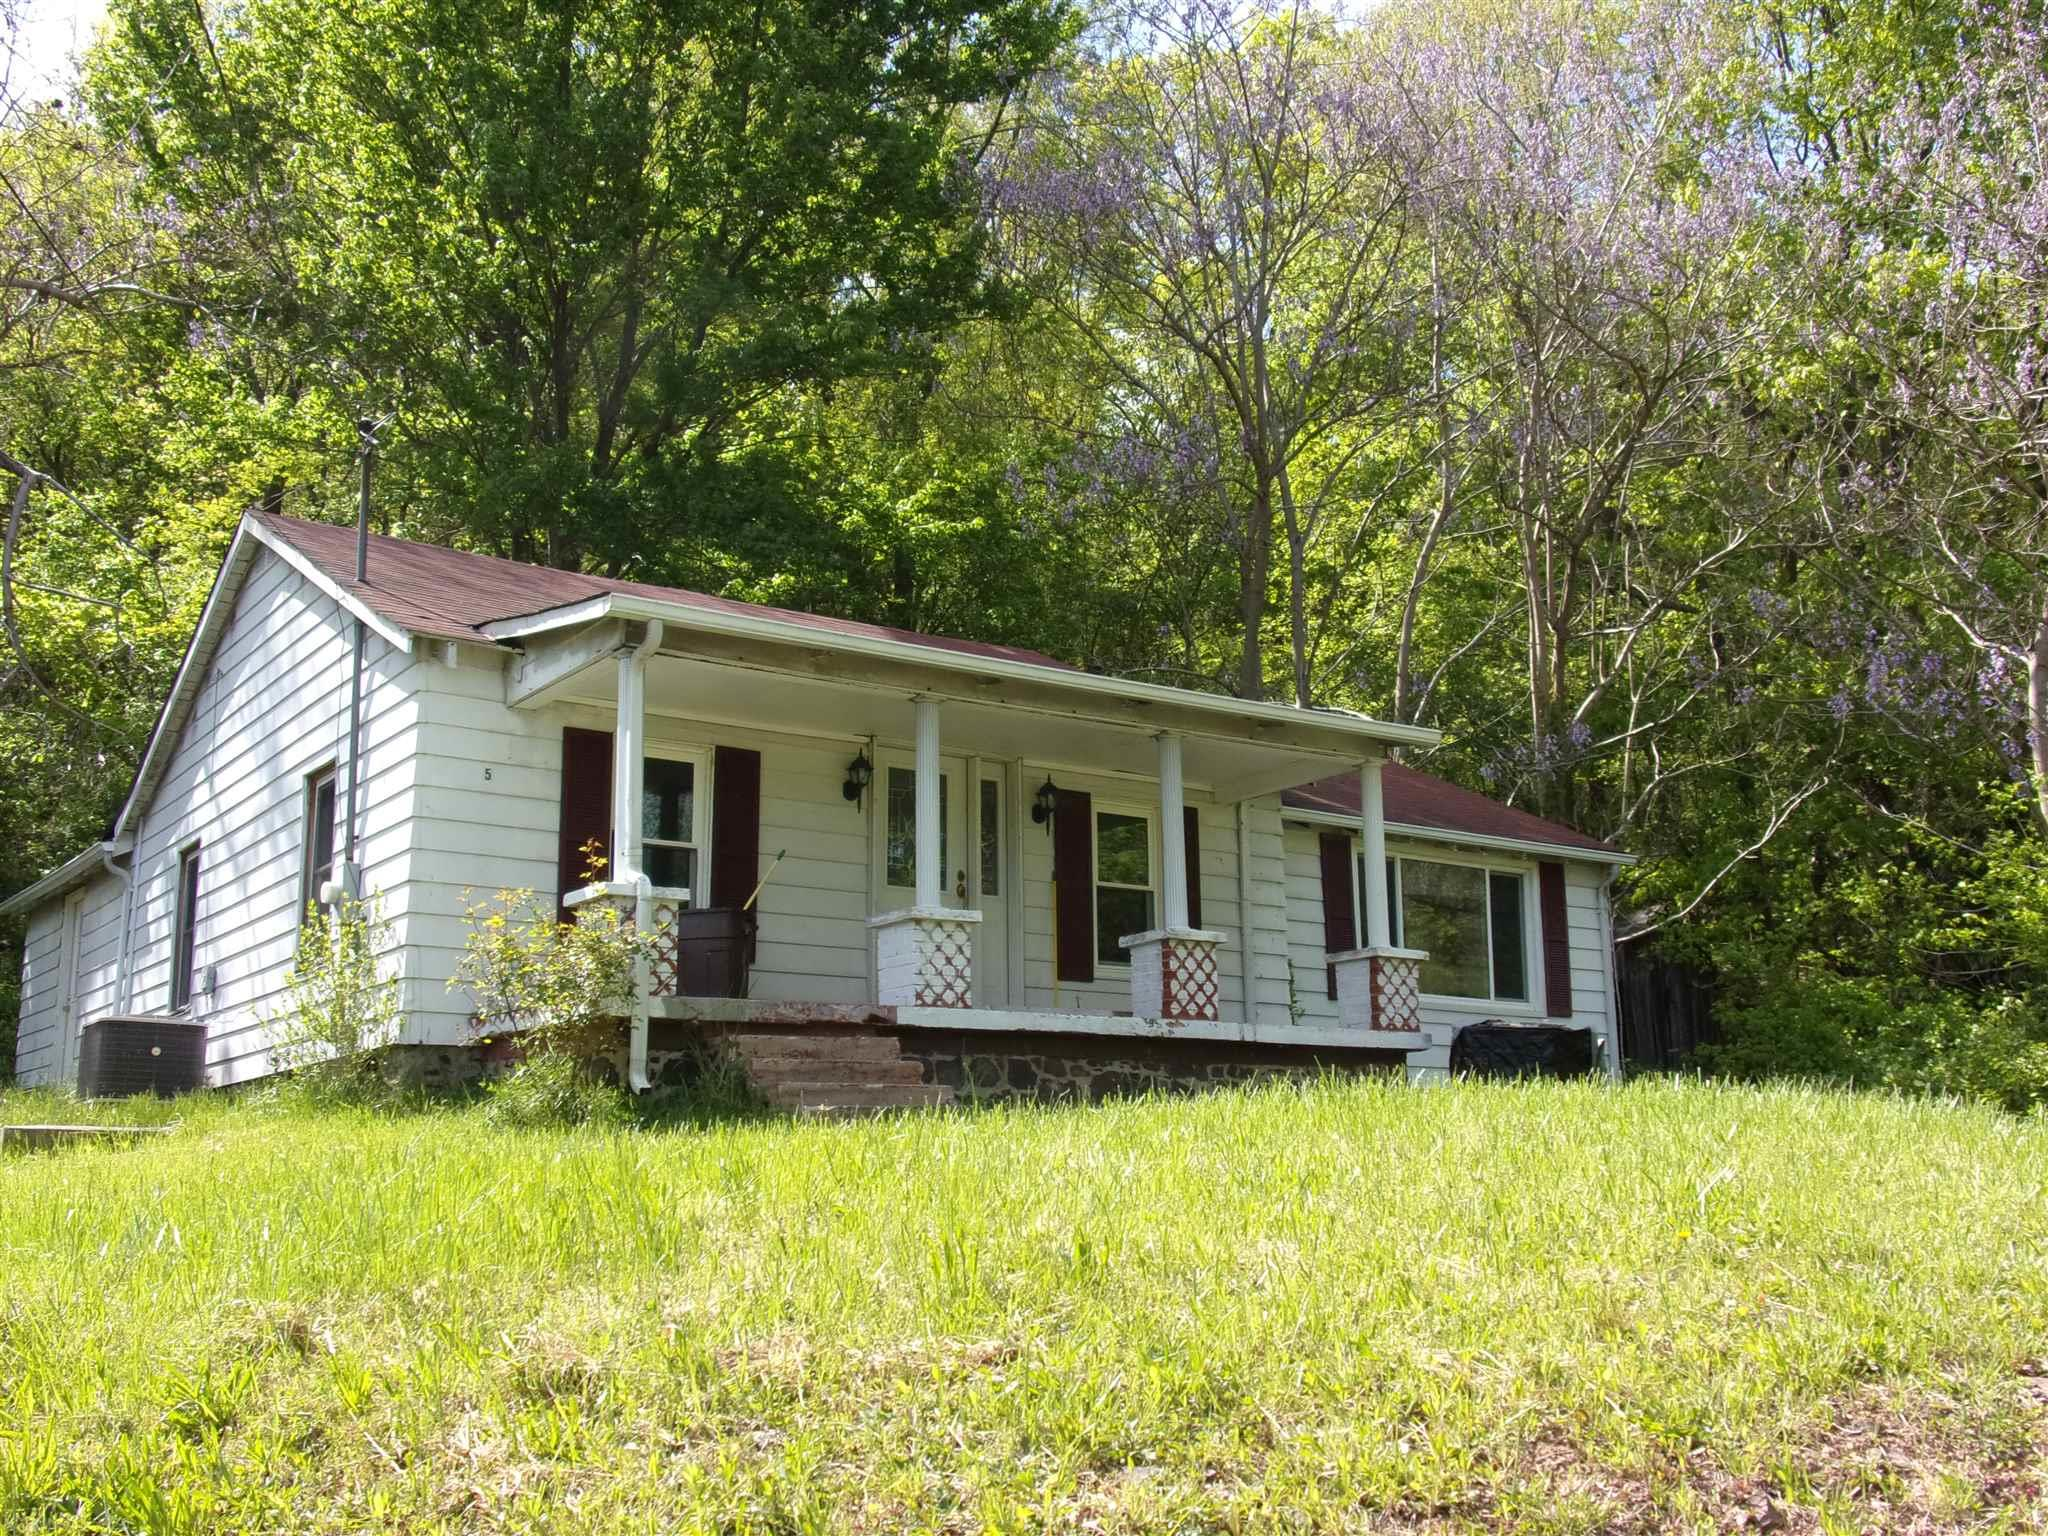 Lovely cottage style home with mountain views, this home has lots of updates, new flooring, new bathroom, updated plumbing, New Heat Pump,  if you are looking for home with mountain views in country this is it!